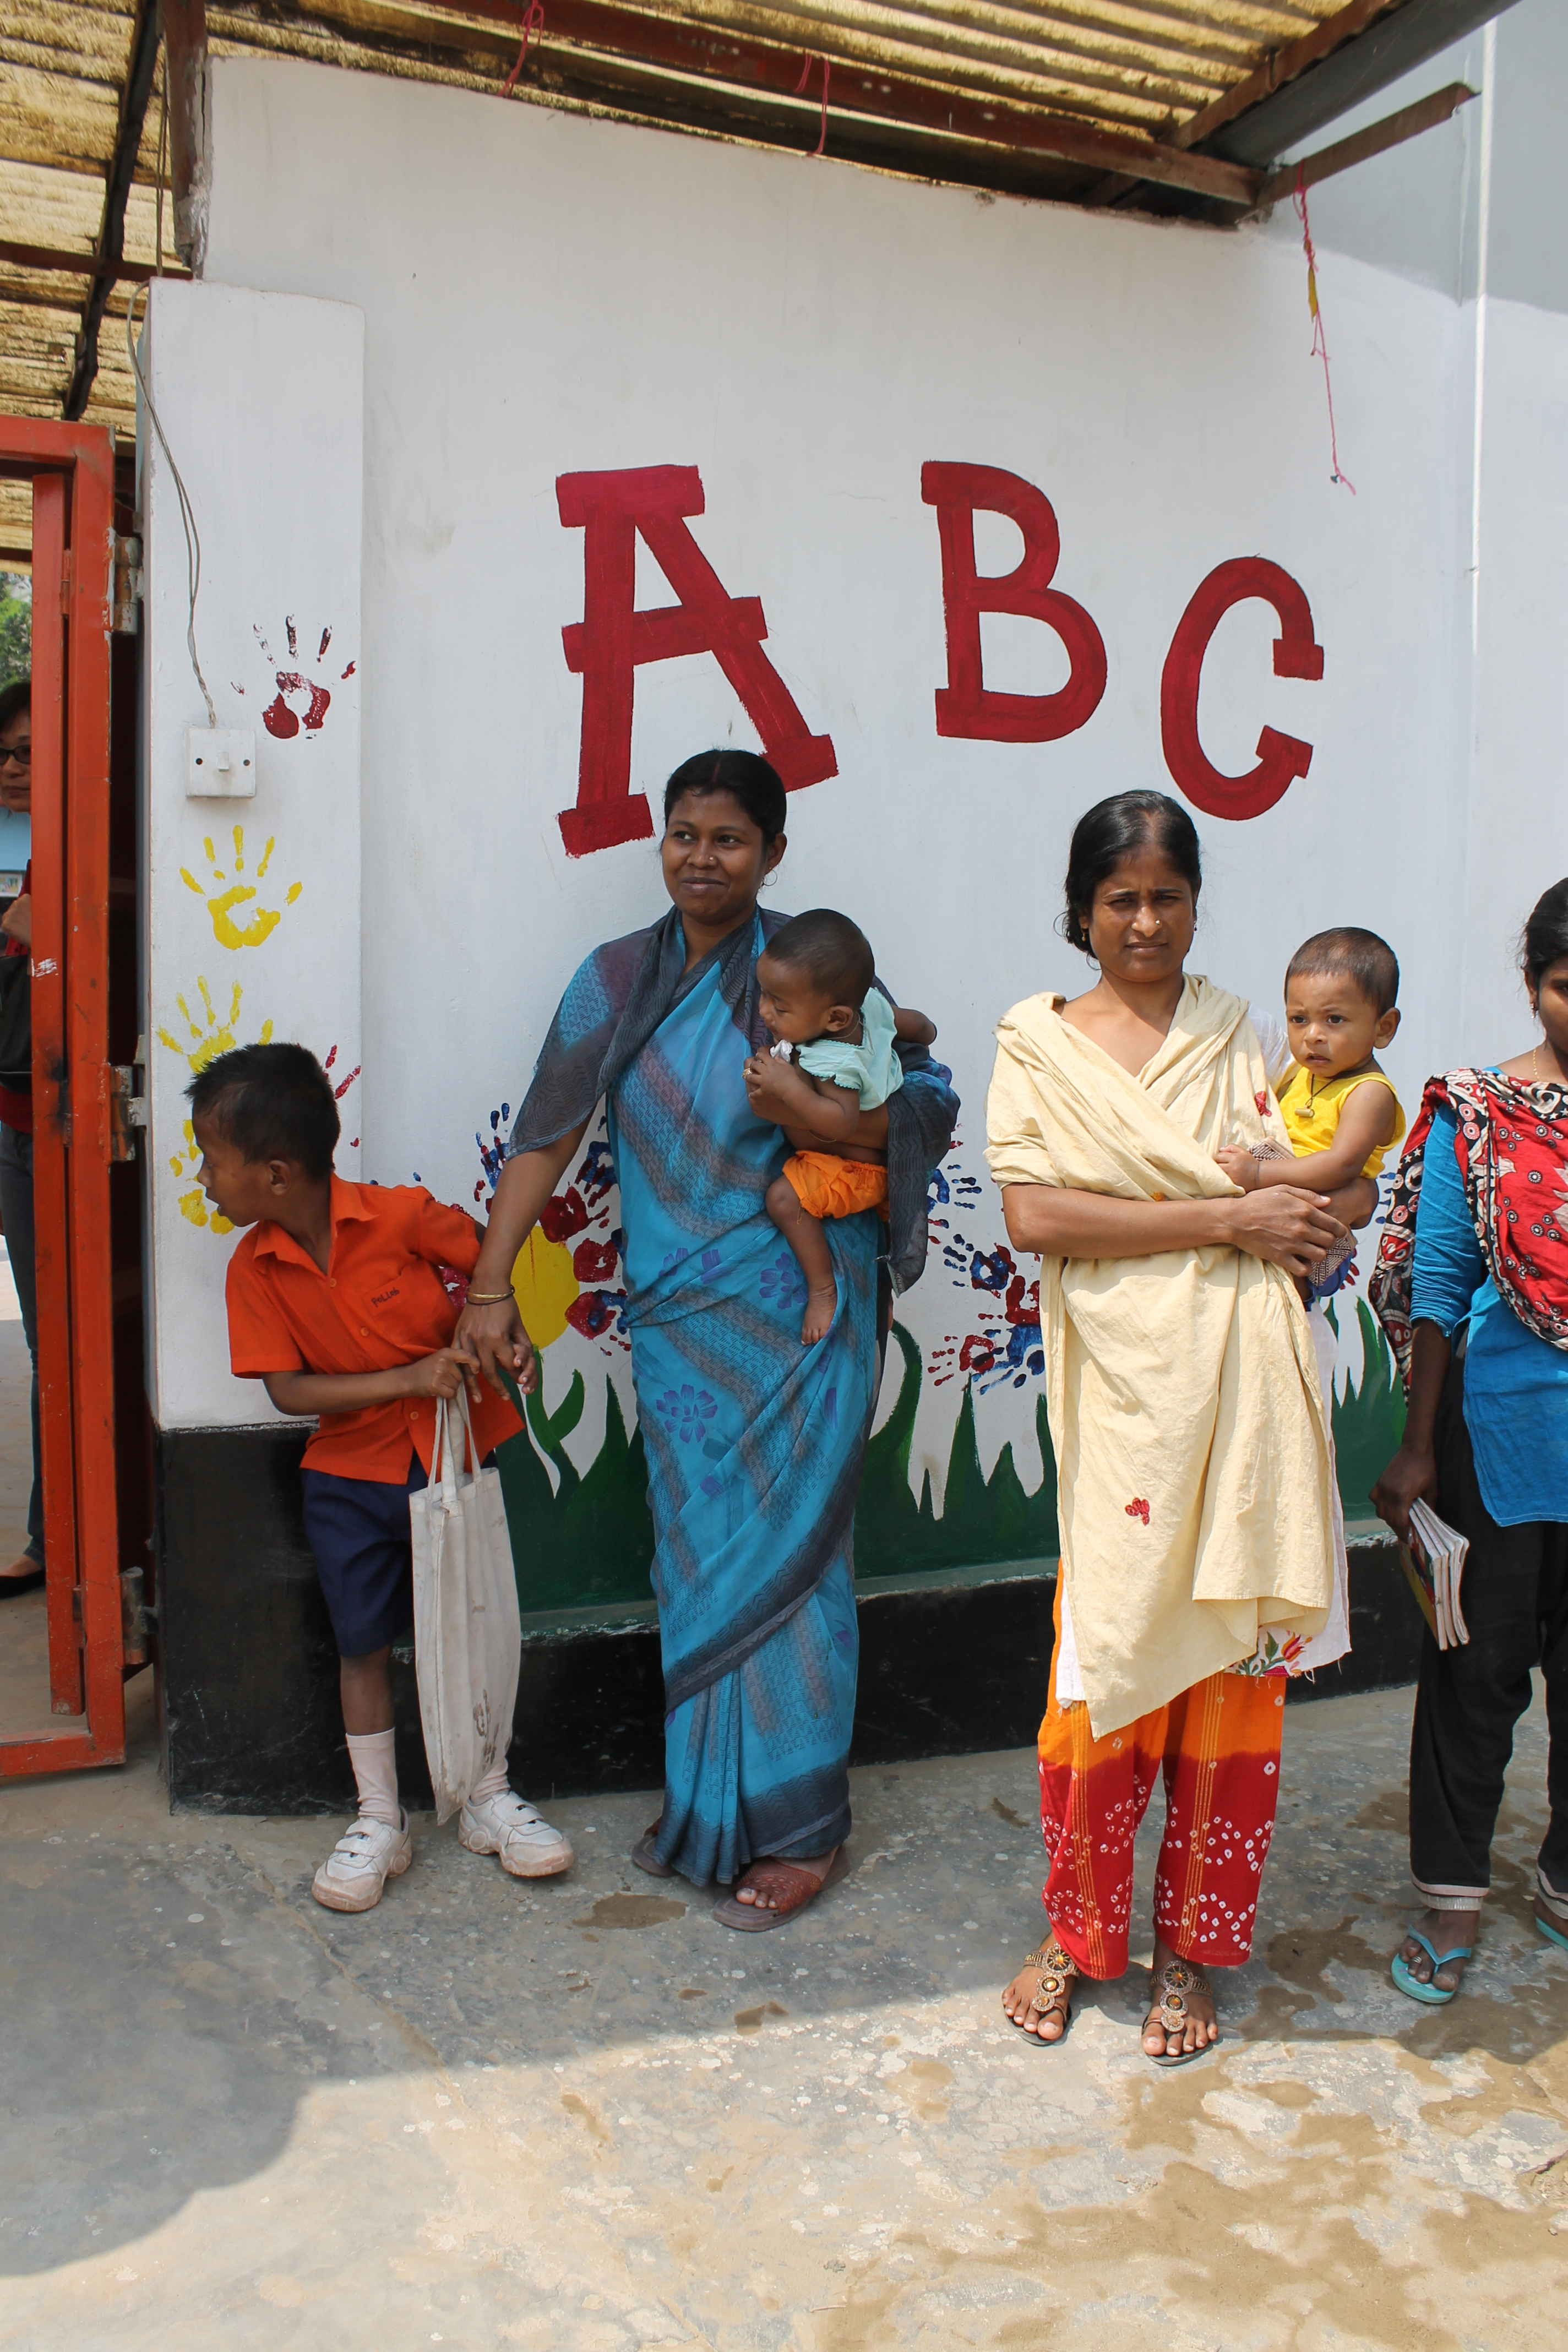 Parents picking up kids at the ABC school.